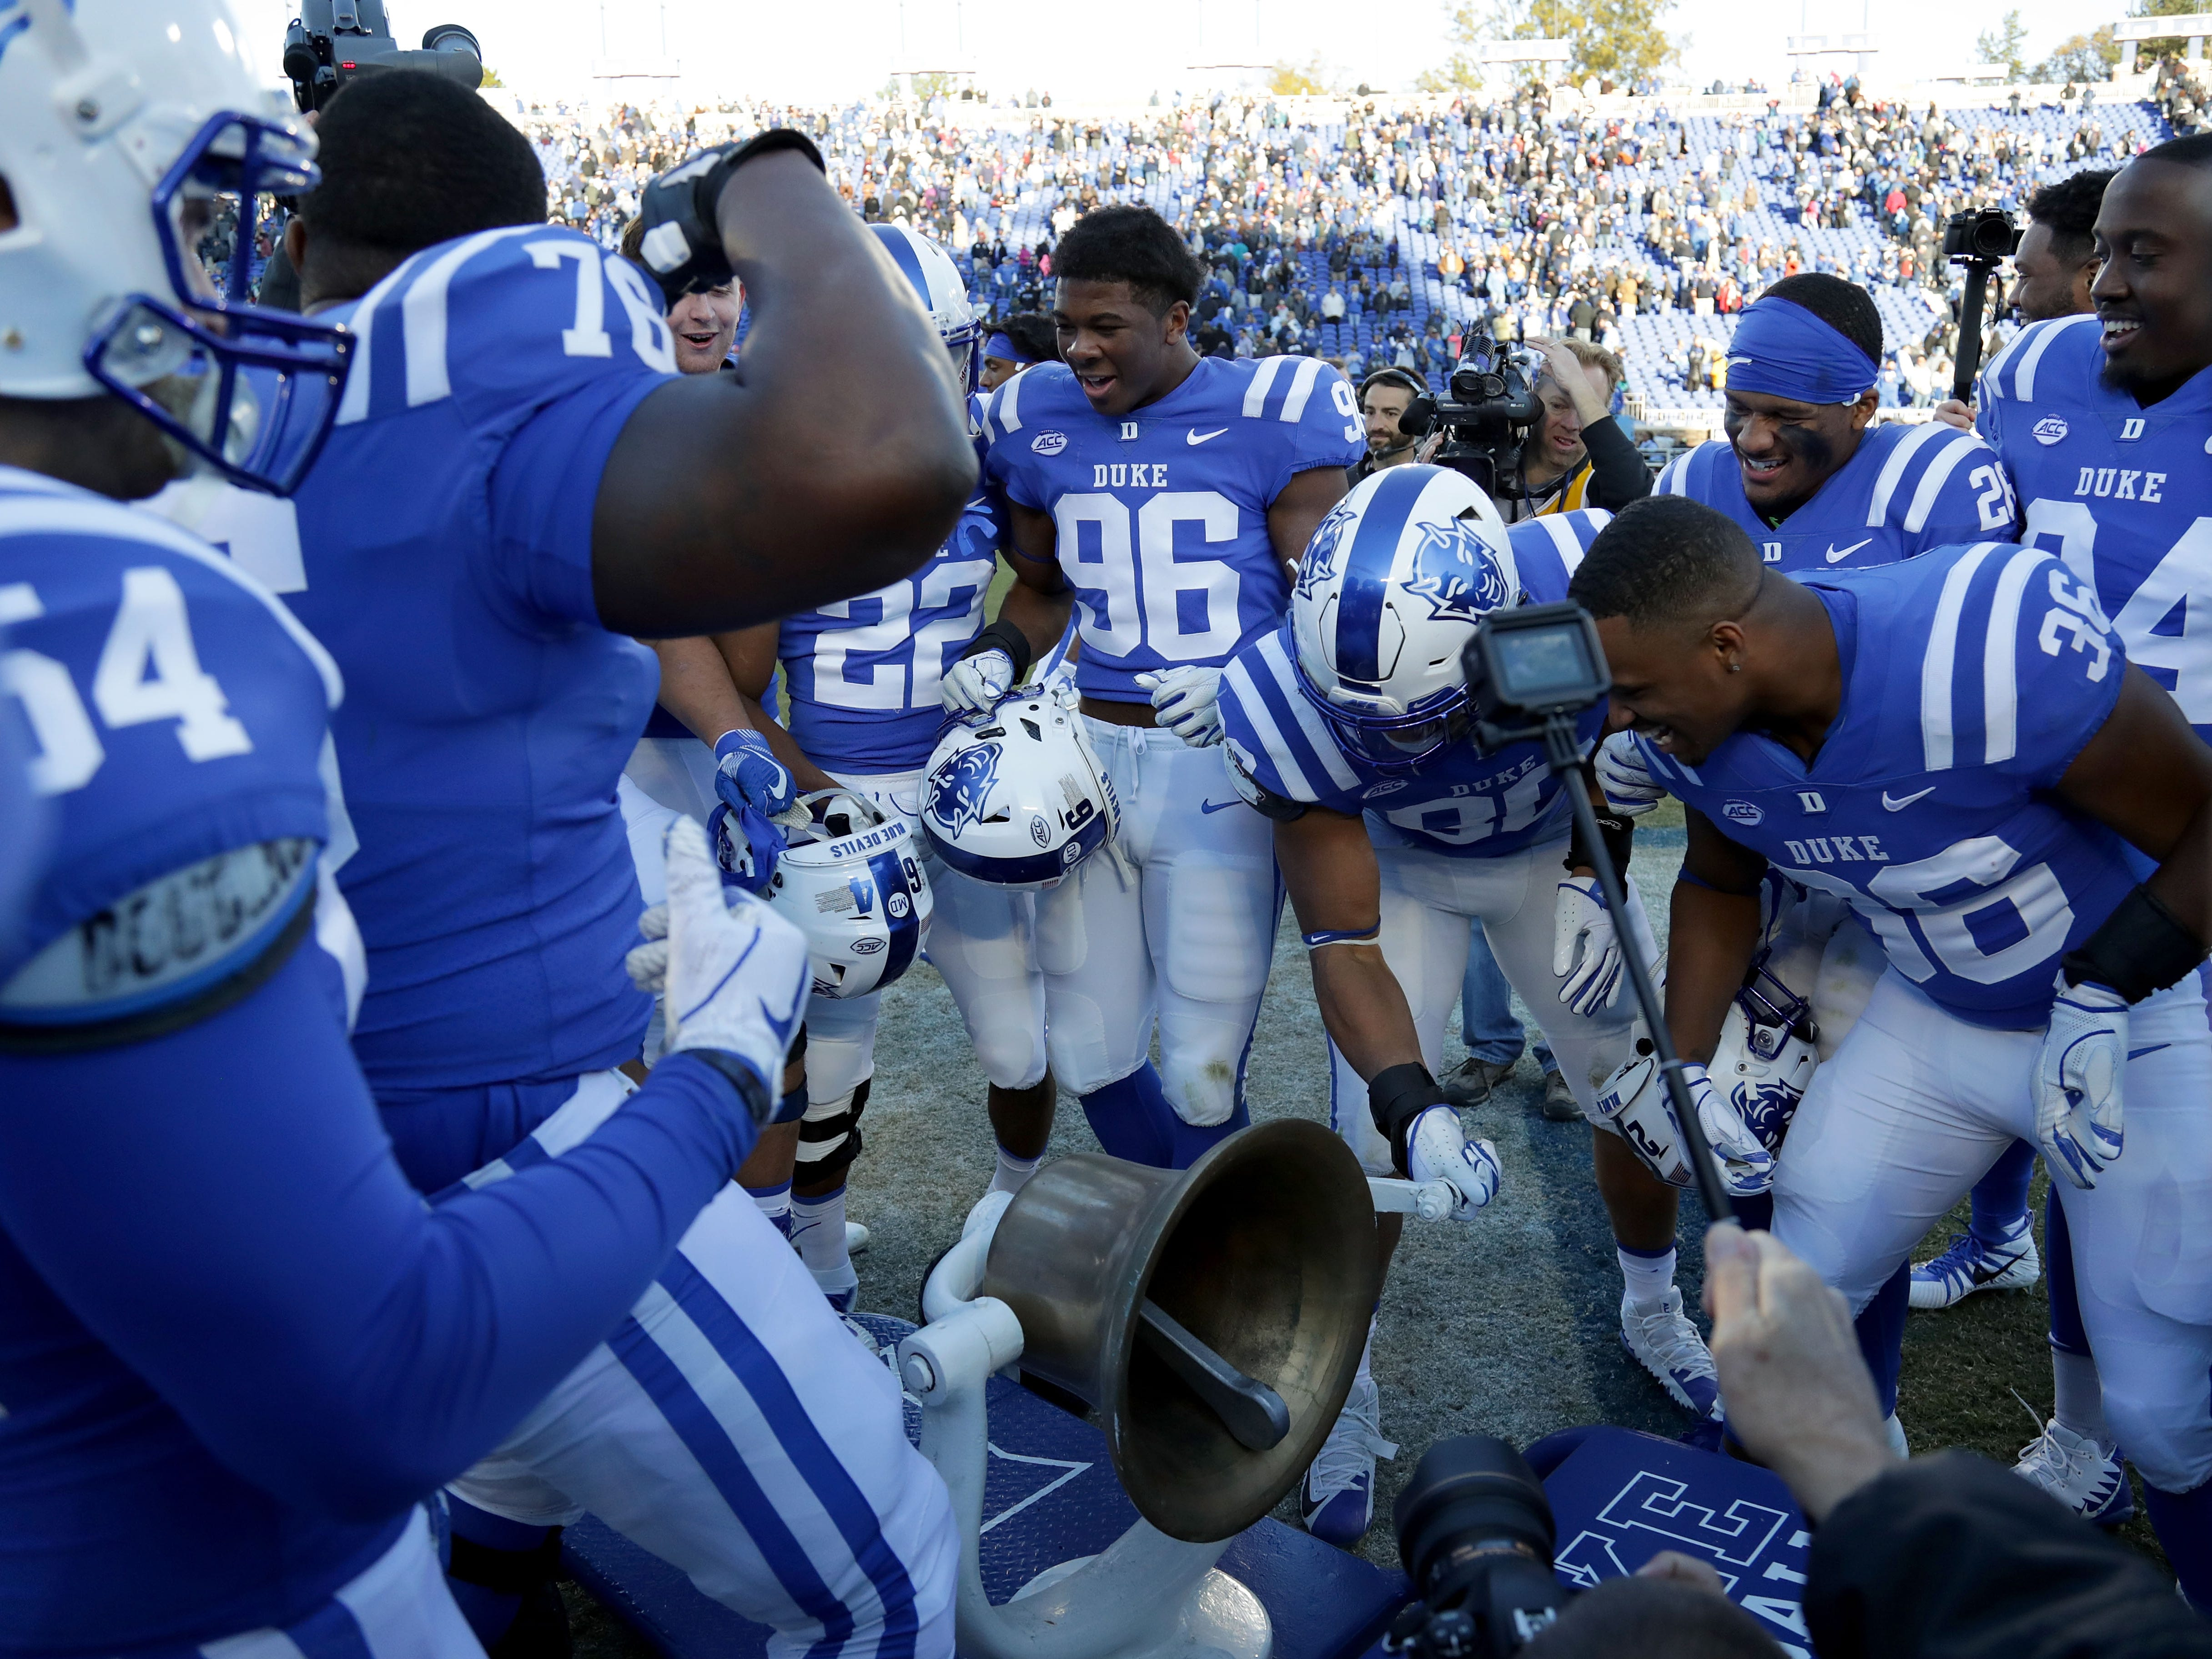 Victory Bell: Duke players celebrate after defeating North Carolina, 42-35, at Wallace Wade Stadium in Durham, N.C. on Nov. 10.